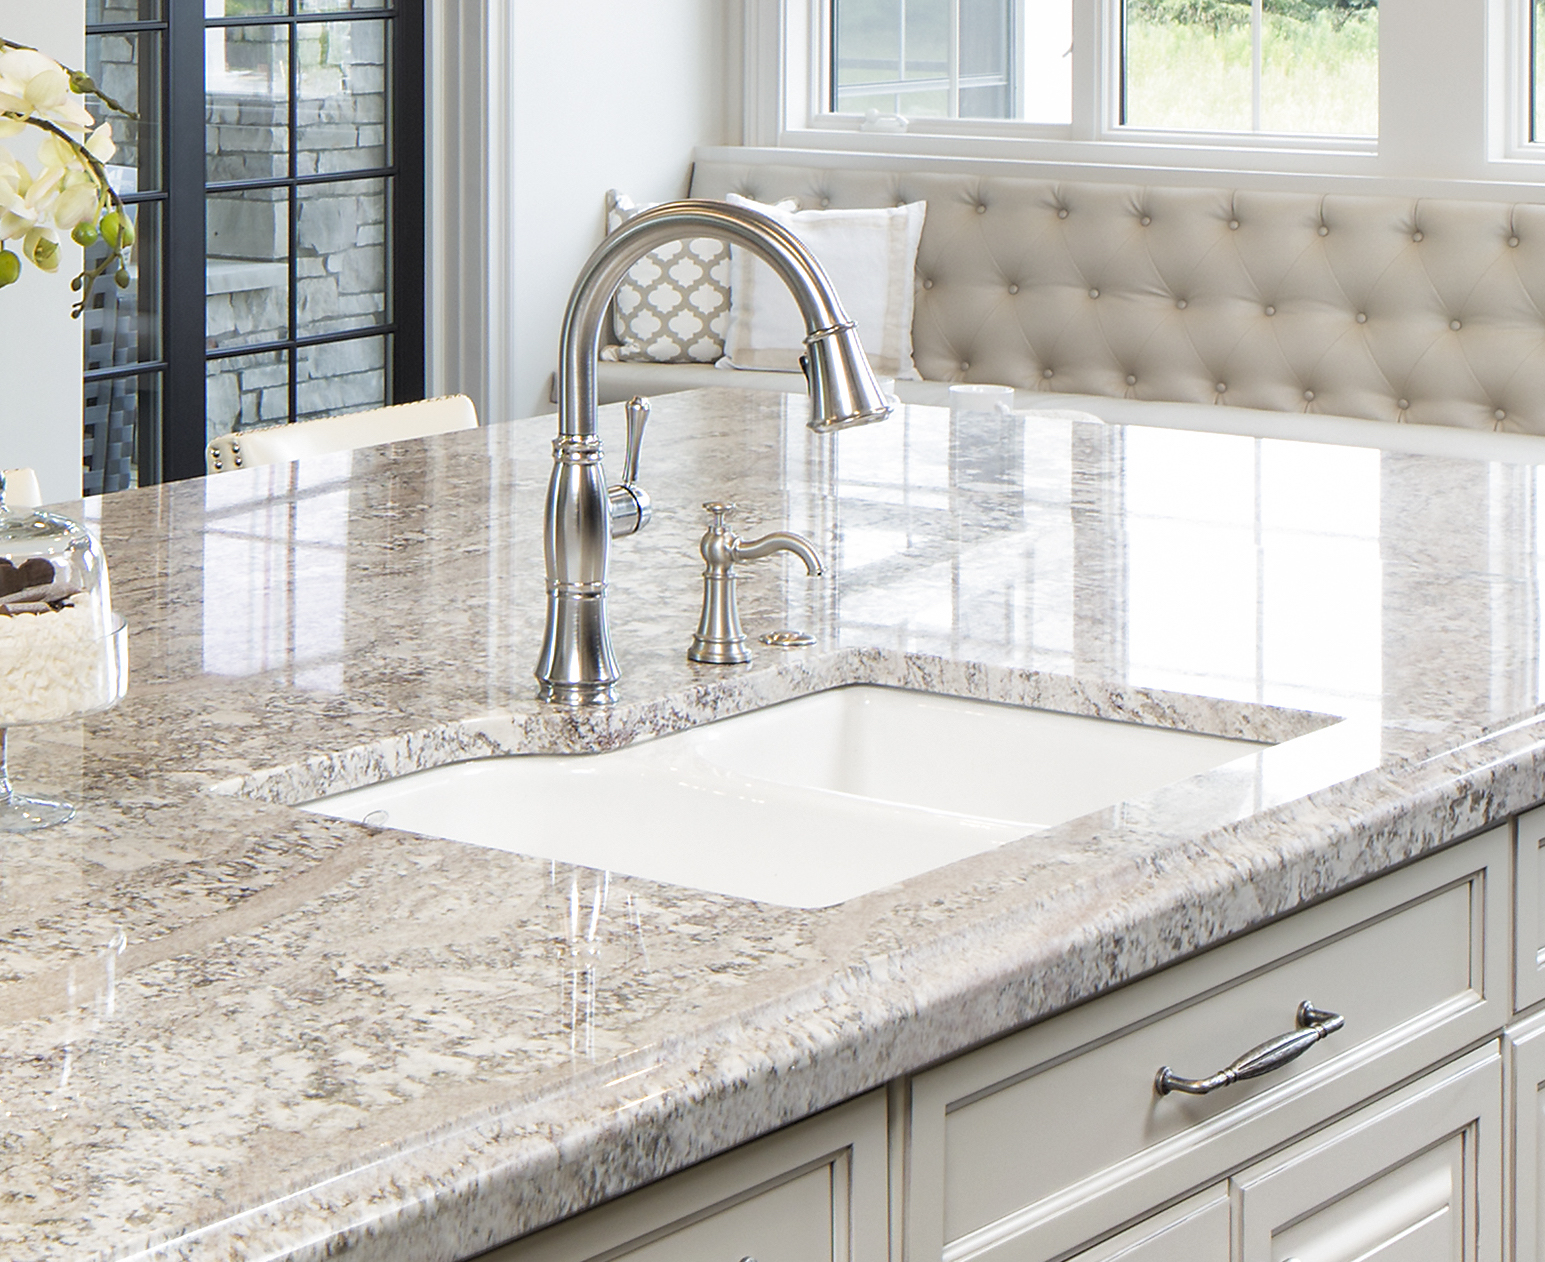 Sink Options For Granite Countertops